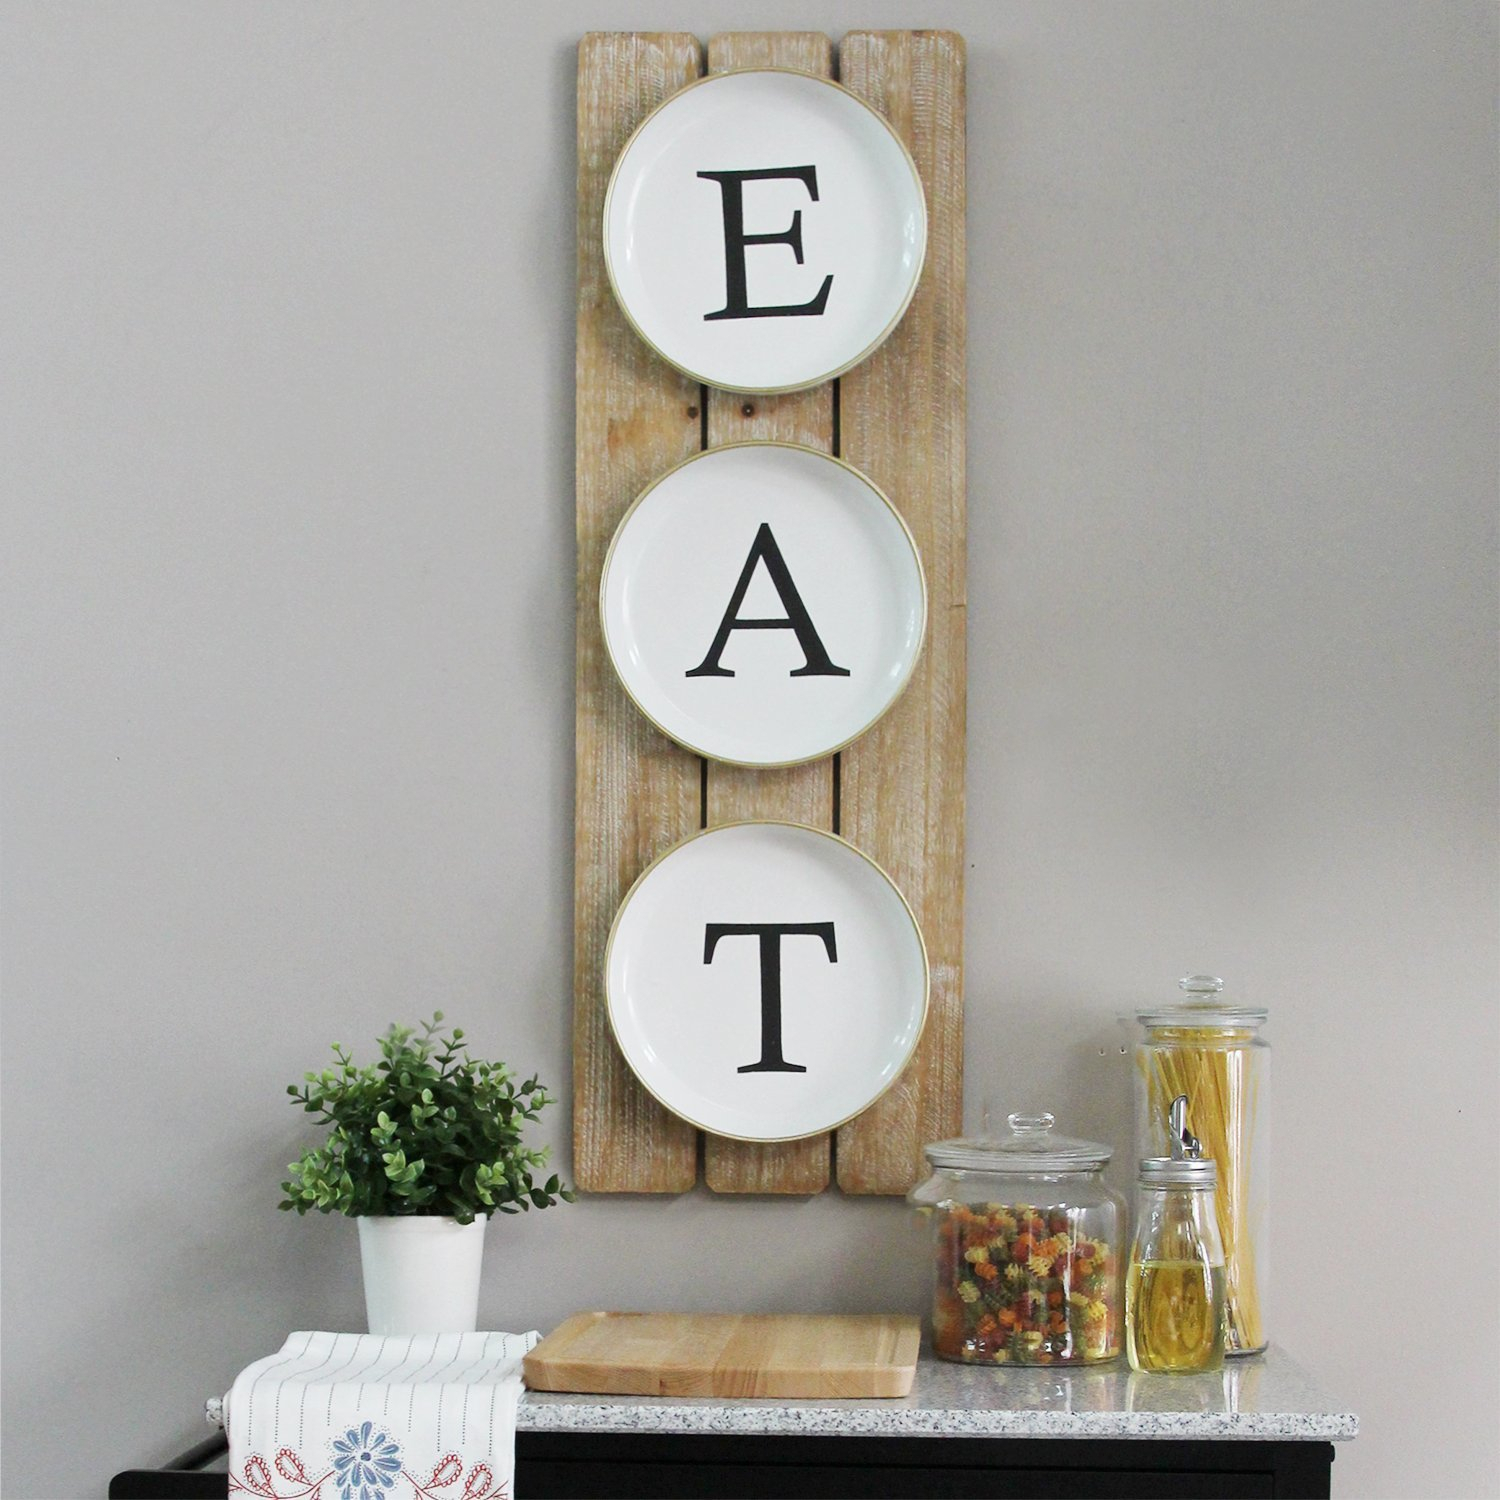 Eat Here Sign | Wayfair Intended For Casual Country Eat Here Retro Wall Decor (View 18 of 30)